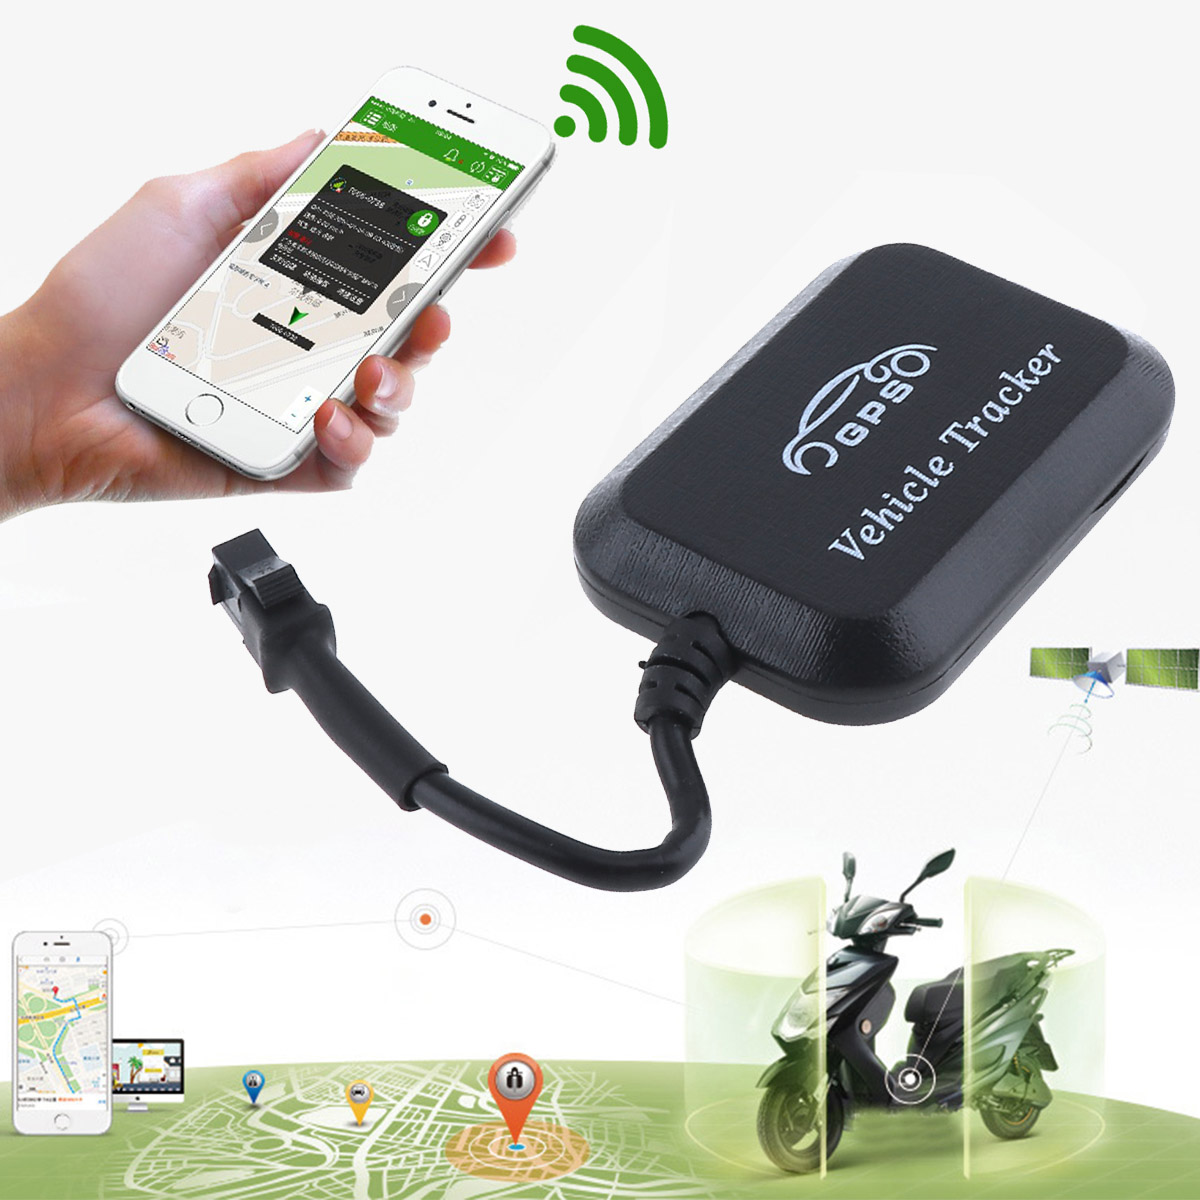 gt008 mini gps tracker locator real time tracking system device gps locator for car vehicle